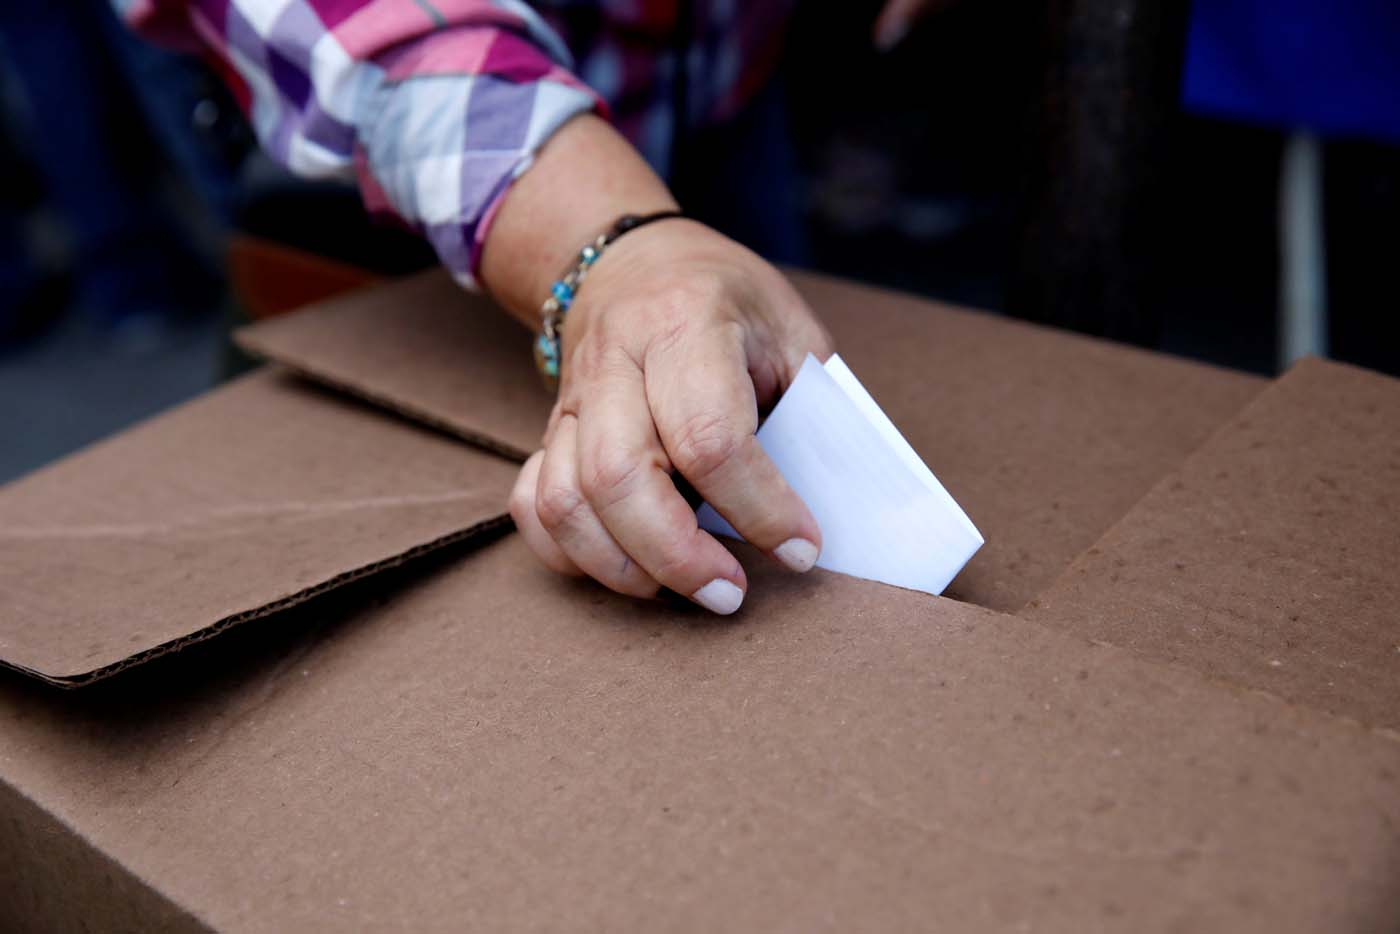 A woman casts her vote during an unofficial plebiscite against Venezuela's President Nicolas Maduro's government and his plan to rewrite the constitution, in Caracas, Venezuela July 16, 2017. REUTERS/Carlos Garcia Rawlins